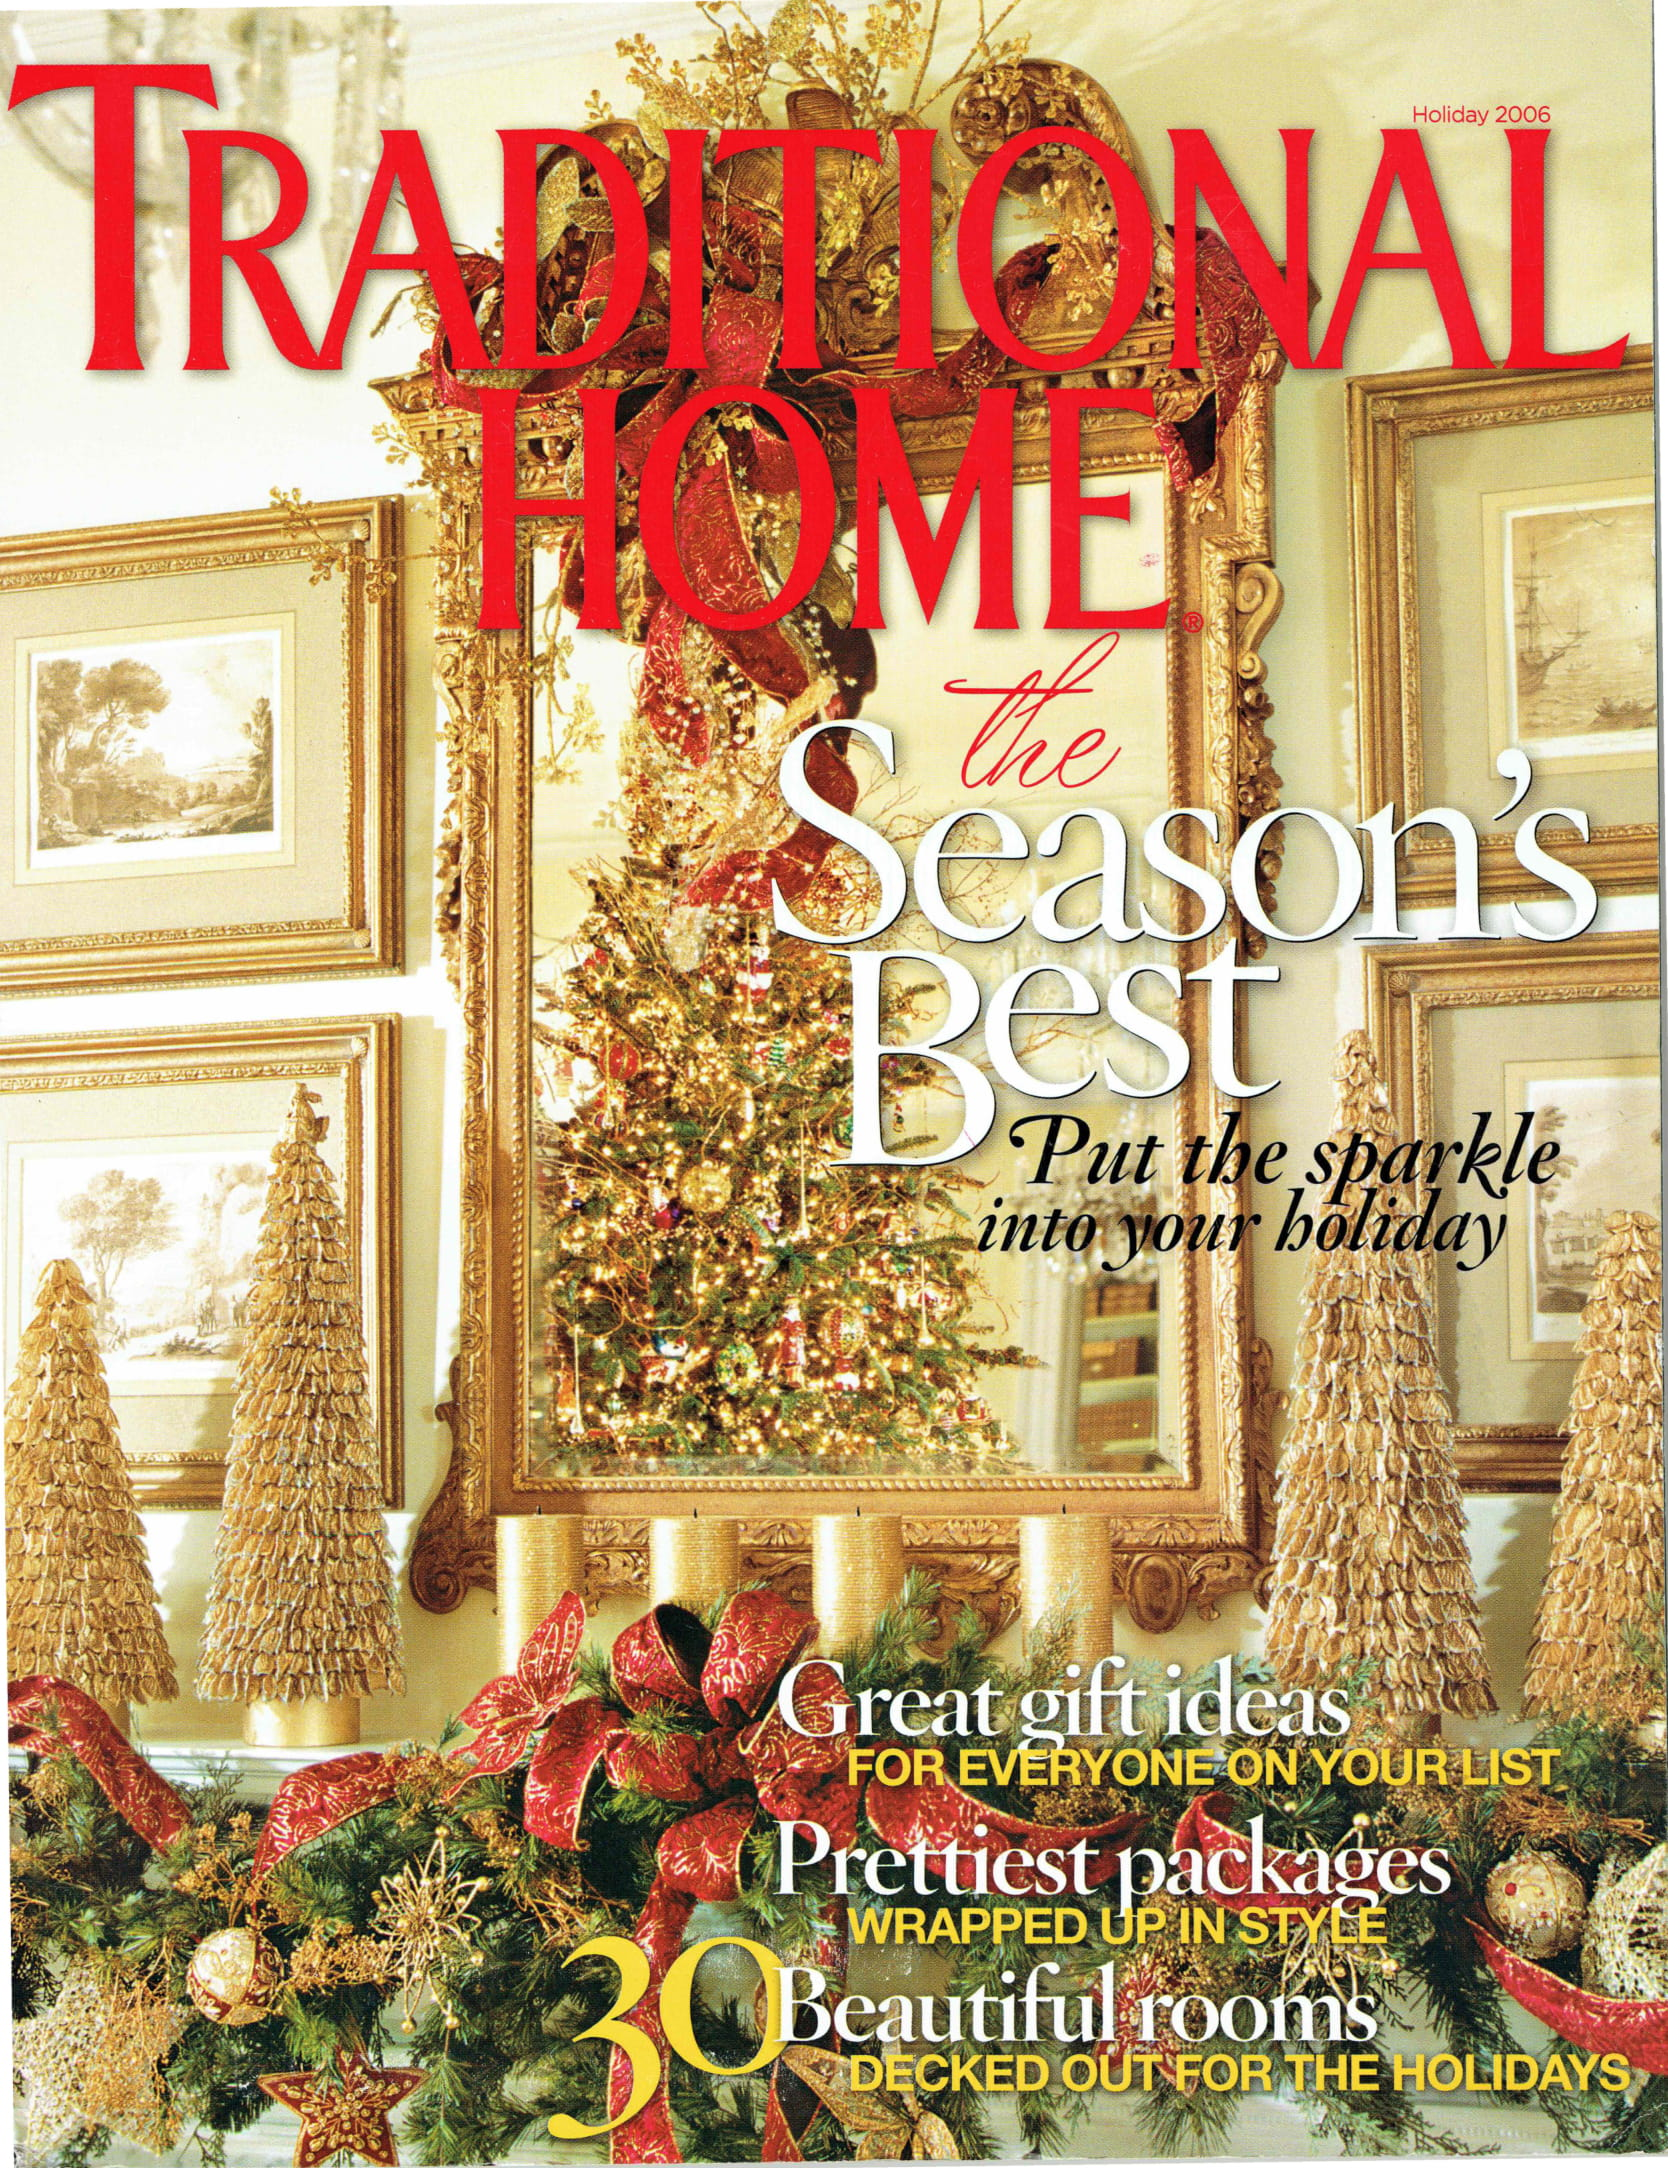 Traditional Home - Holiday 2006 Cover-1